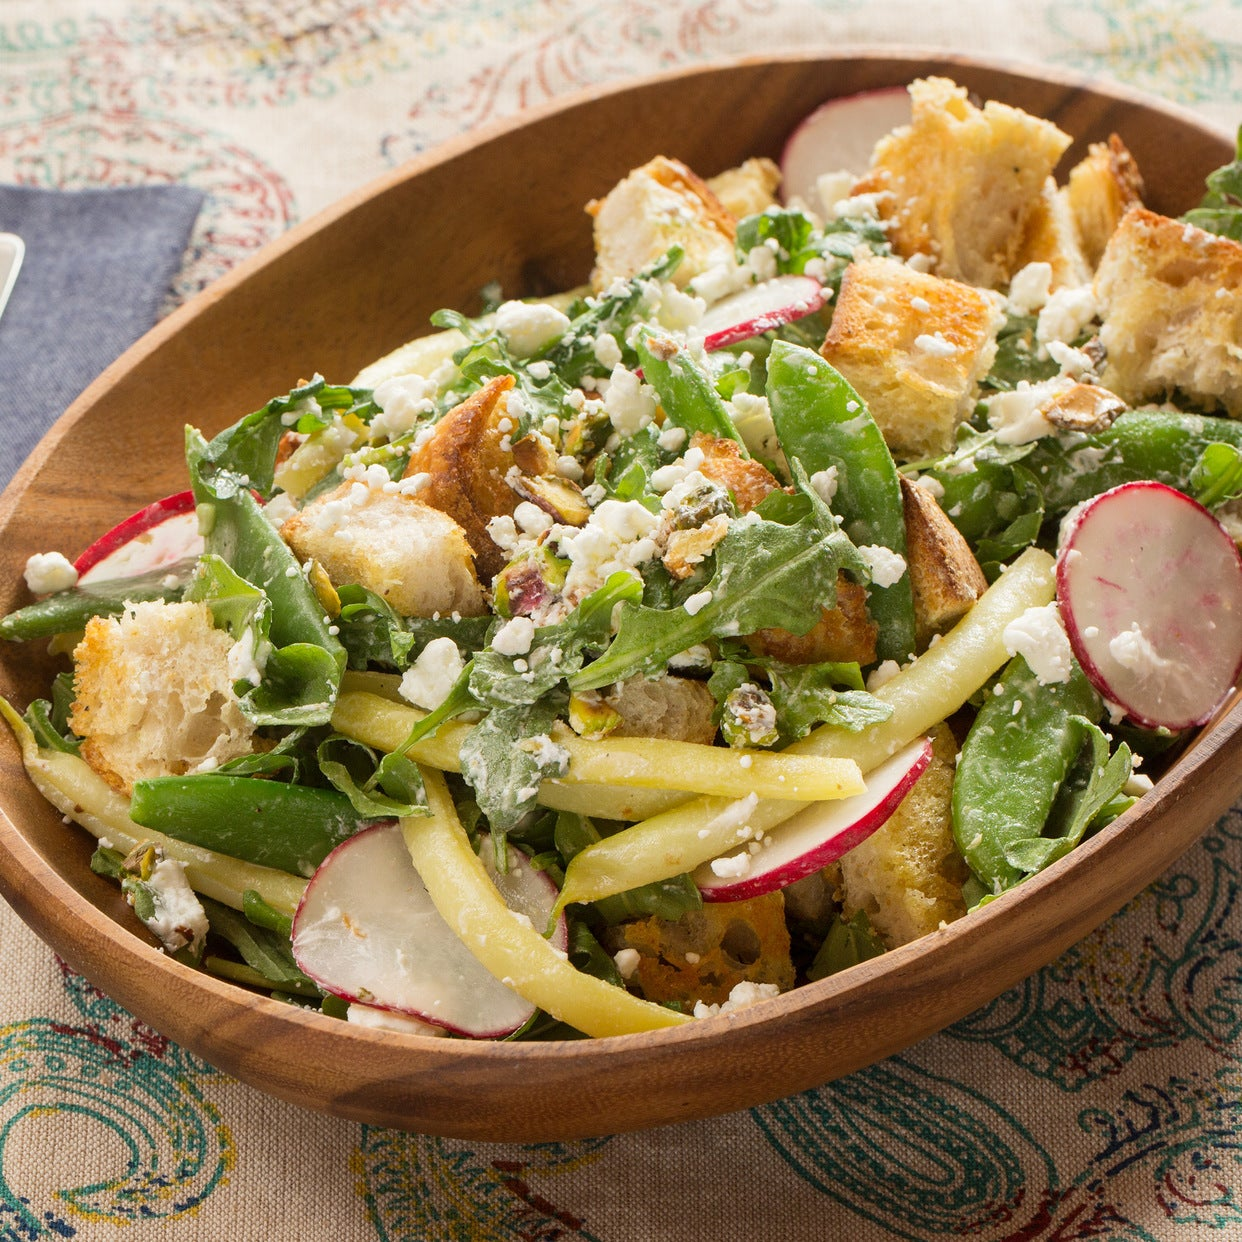 Summer Bean & Goat Cheese Panzanella with Garlic Croutons & Toasted Pistachios